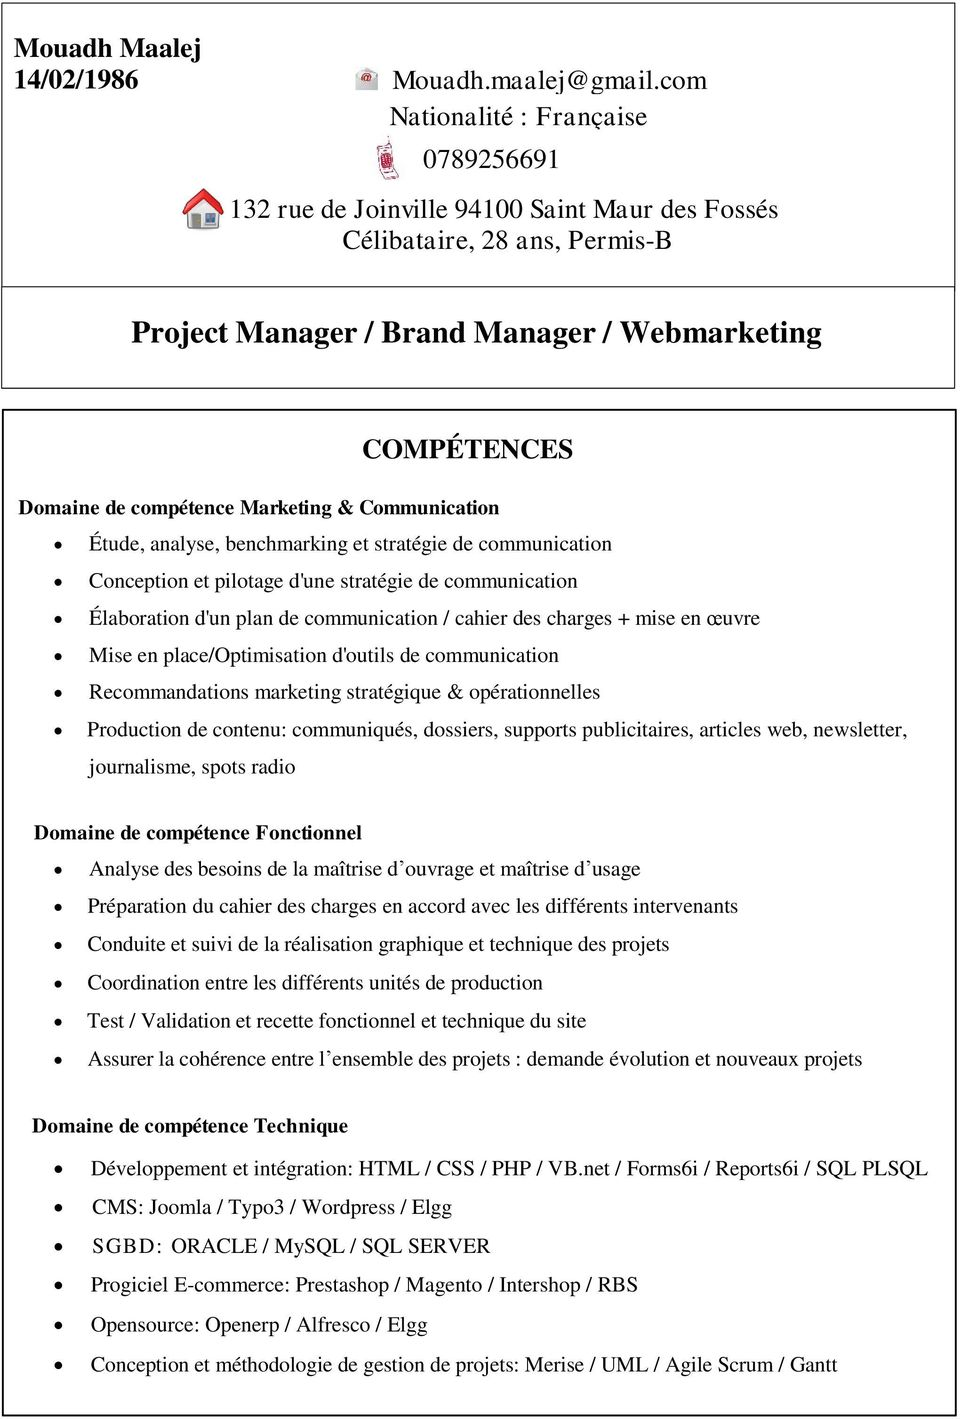 .. Project Manager / Brand Manager / Webmarketing COMPÉTENCES Domaine de compétence Marketing & Communication Étude, analyse, benchmarking et stratégie de communication Conception et pilotage d'une